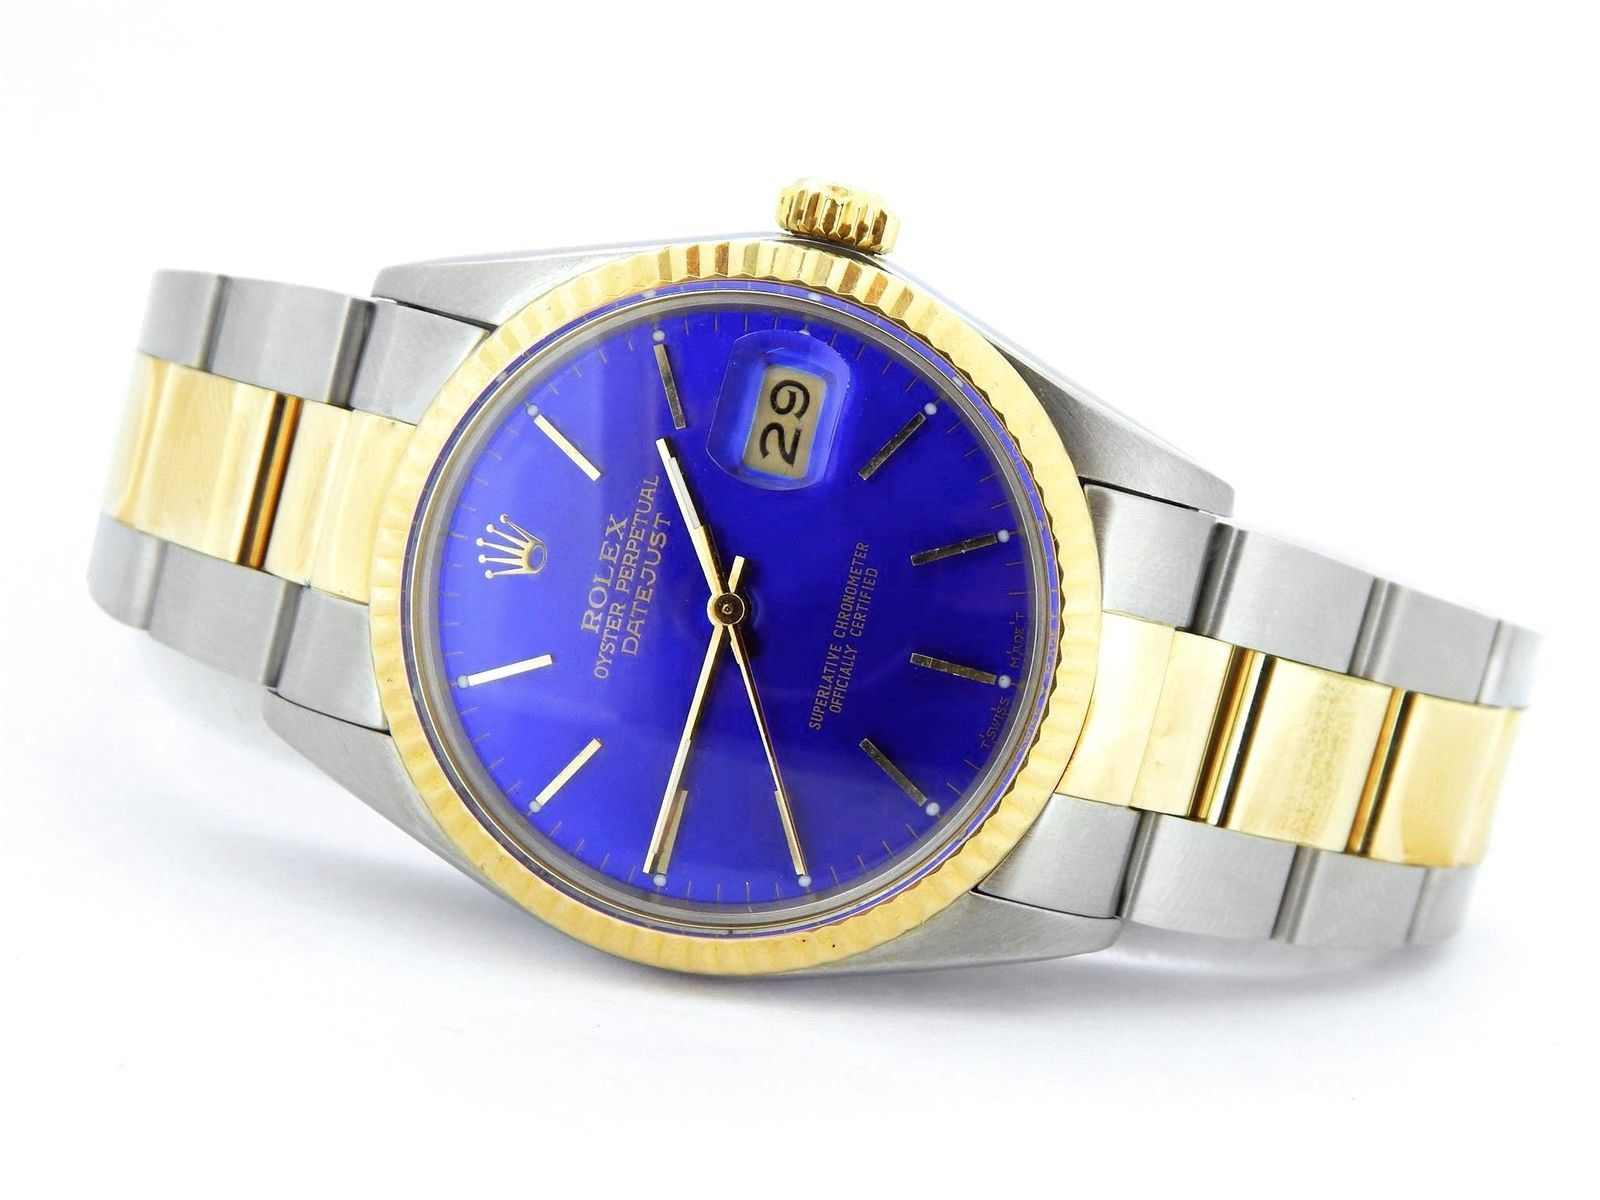 Rolex Datejust 16013 Mens Stainless Steel Yellow Gold Watch Quickset Blue Dial Luxury Watches For Men Rolex Datejust Gold Watch